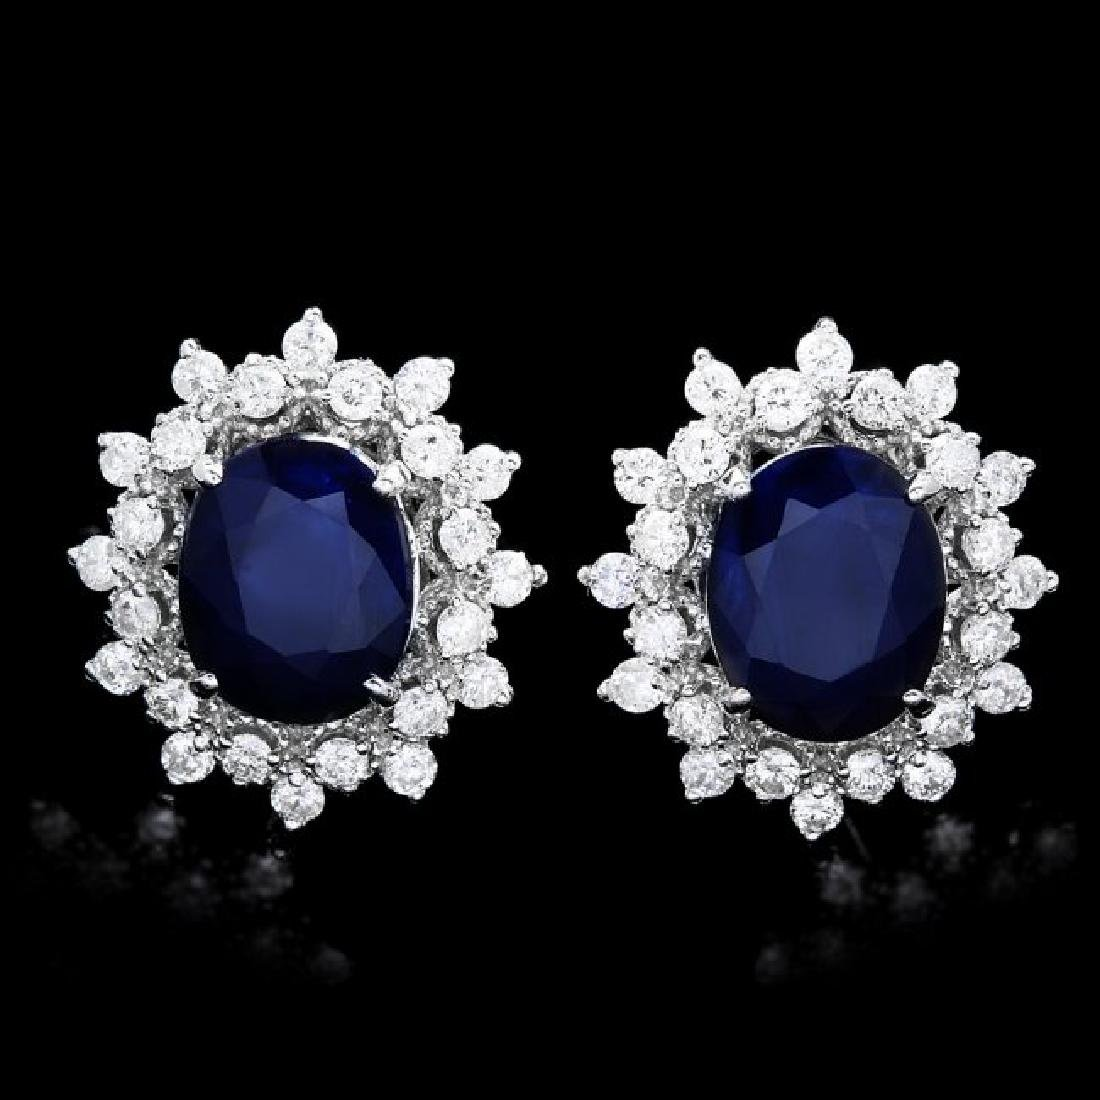 14k Gold 6ct Sapphire 1.30ct Diamond Earrings